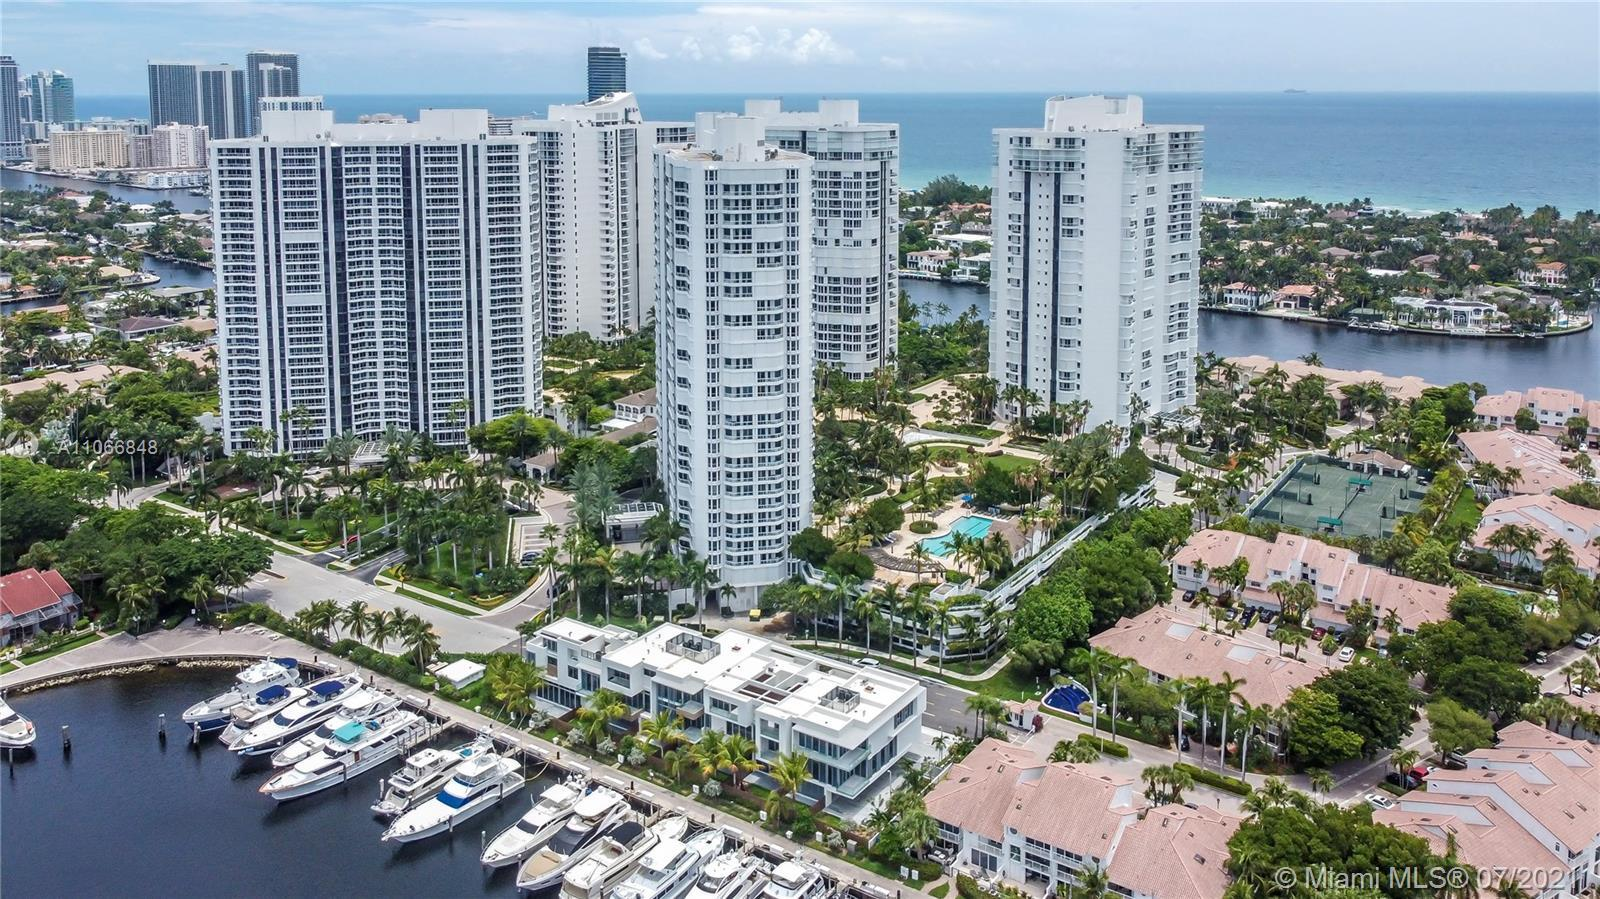 The Point is located in the Amazing city of Aventura, situated on a 35 acres that offers ocean, inte